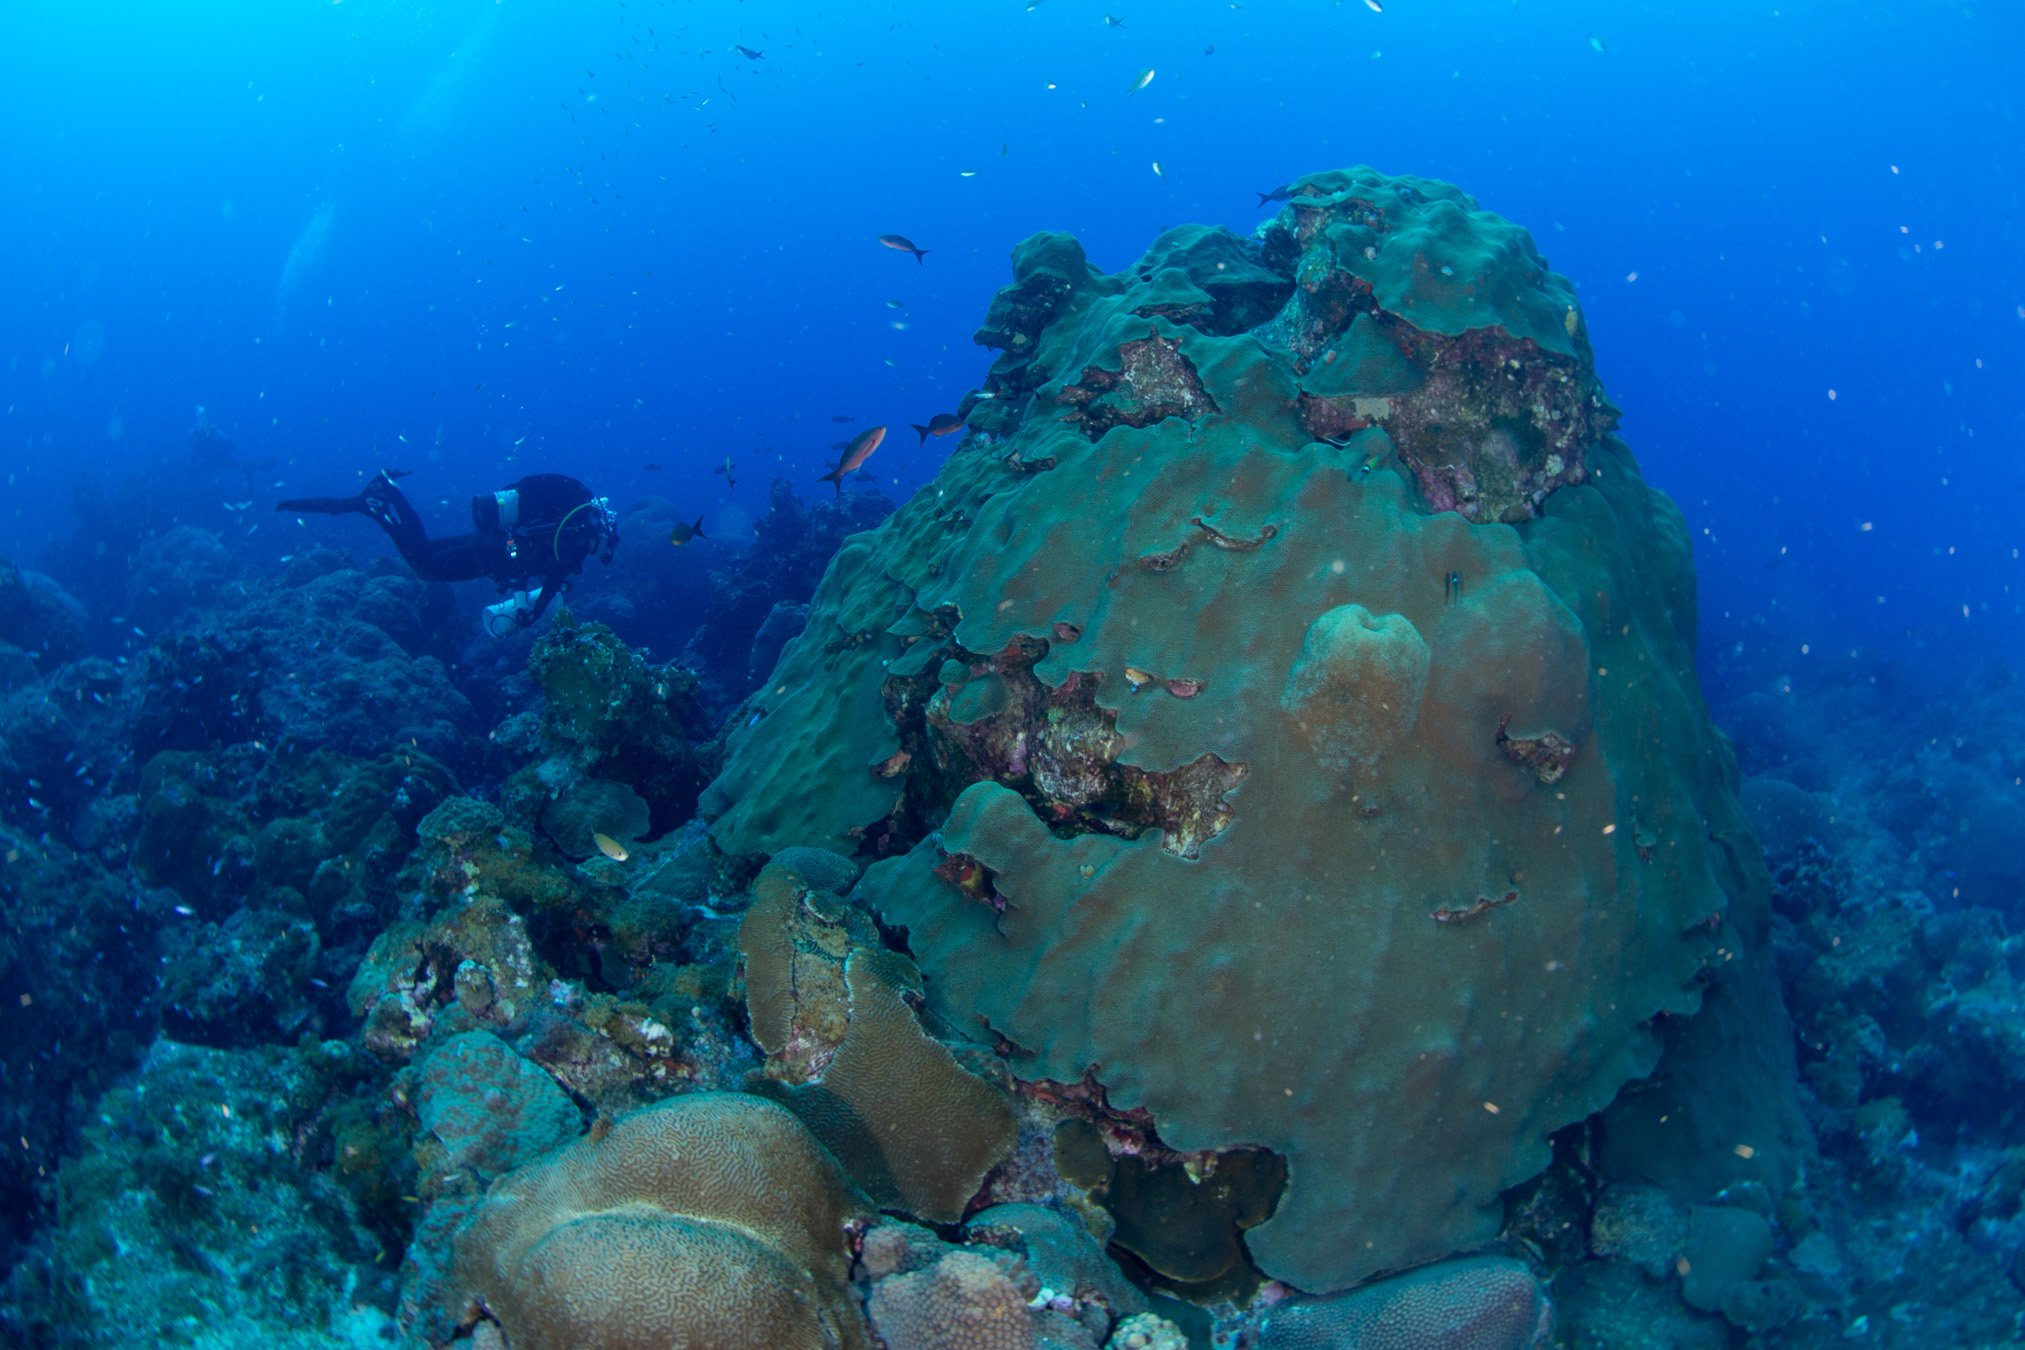 An adult colony of Orbicella faveolata, an important reef-building coral that forms large mountainous colonies, is currently listed as threatened under the ESA. Image credit: NOAA